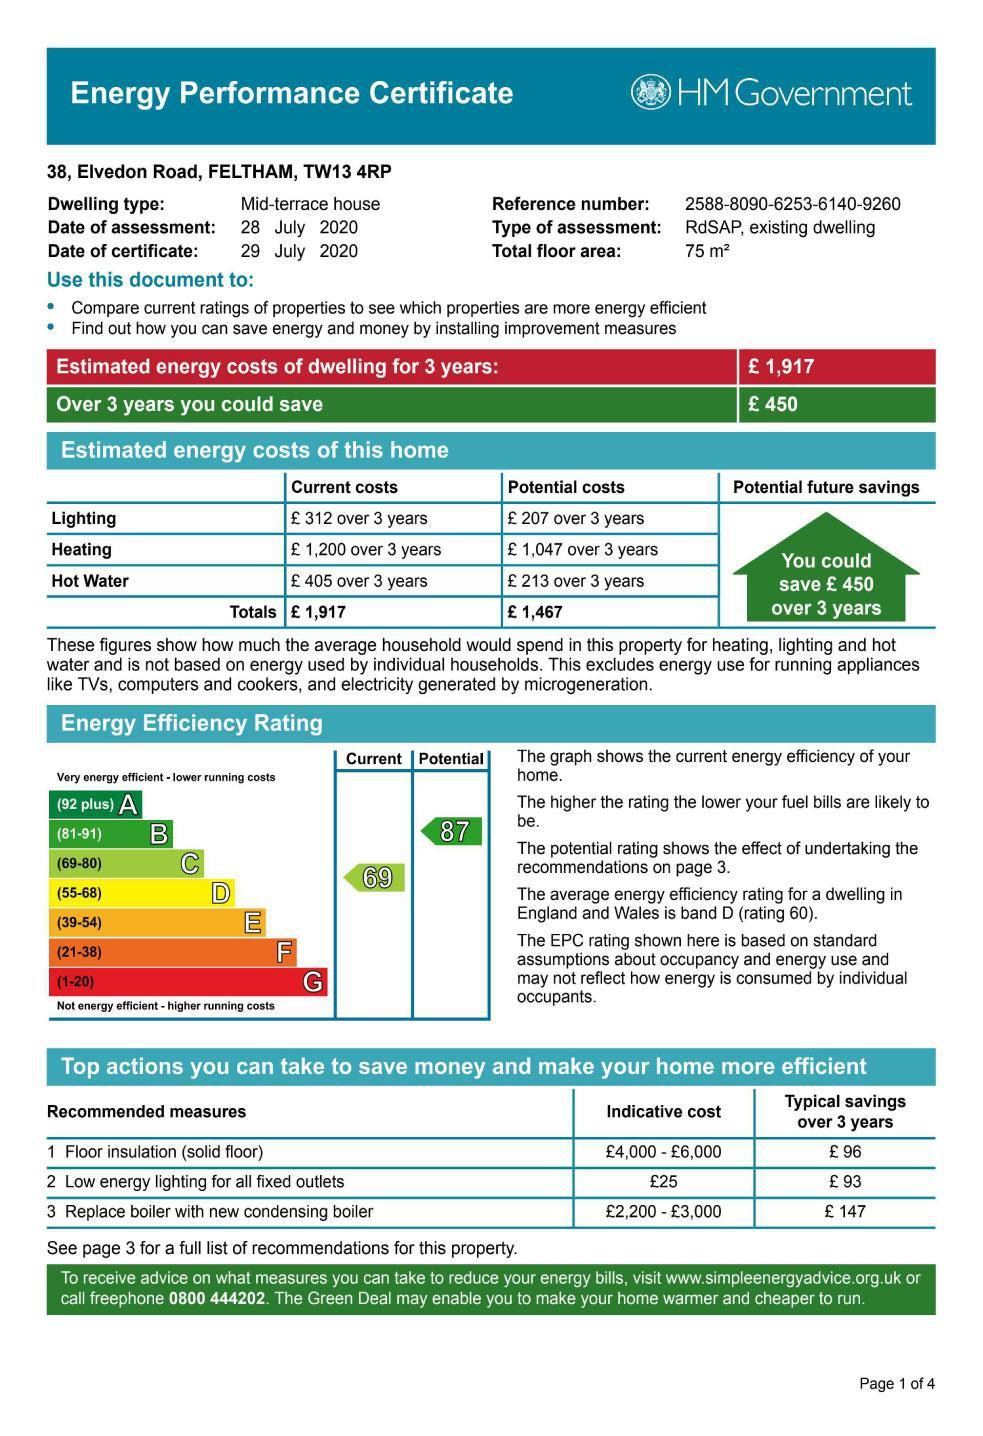 EPC Graph for 38 Elvedon Road, Feltham, Middlesex TW13 4RP